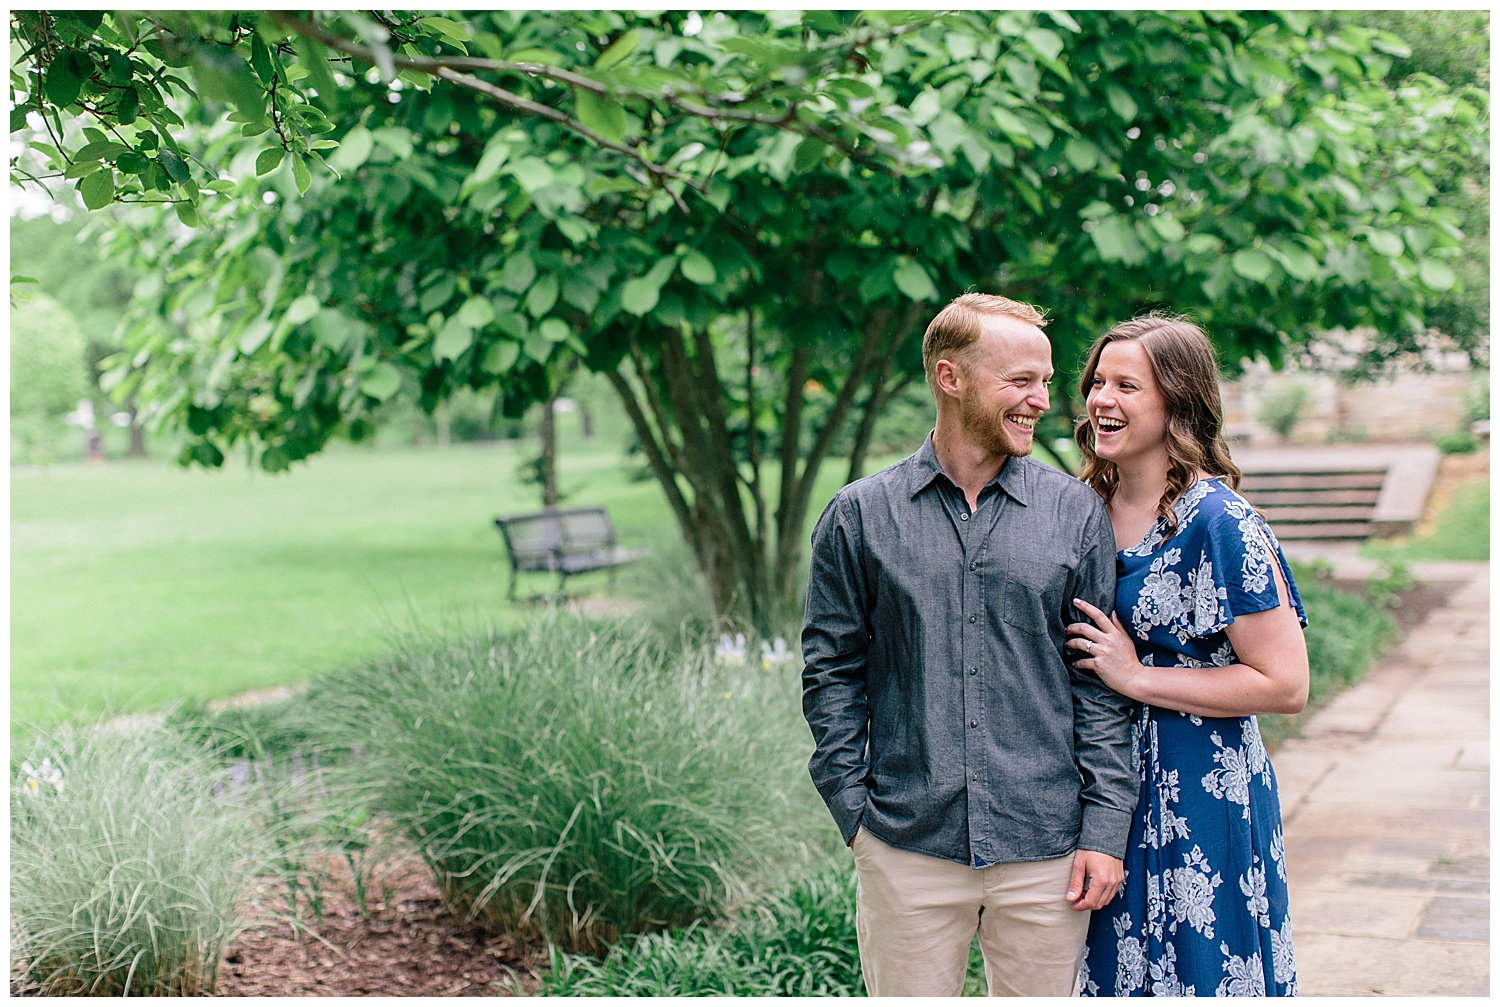 emily-belson-photography-frederick-md-engagement-17.jpg